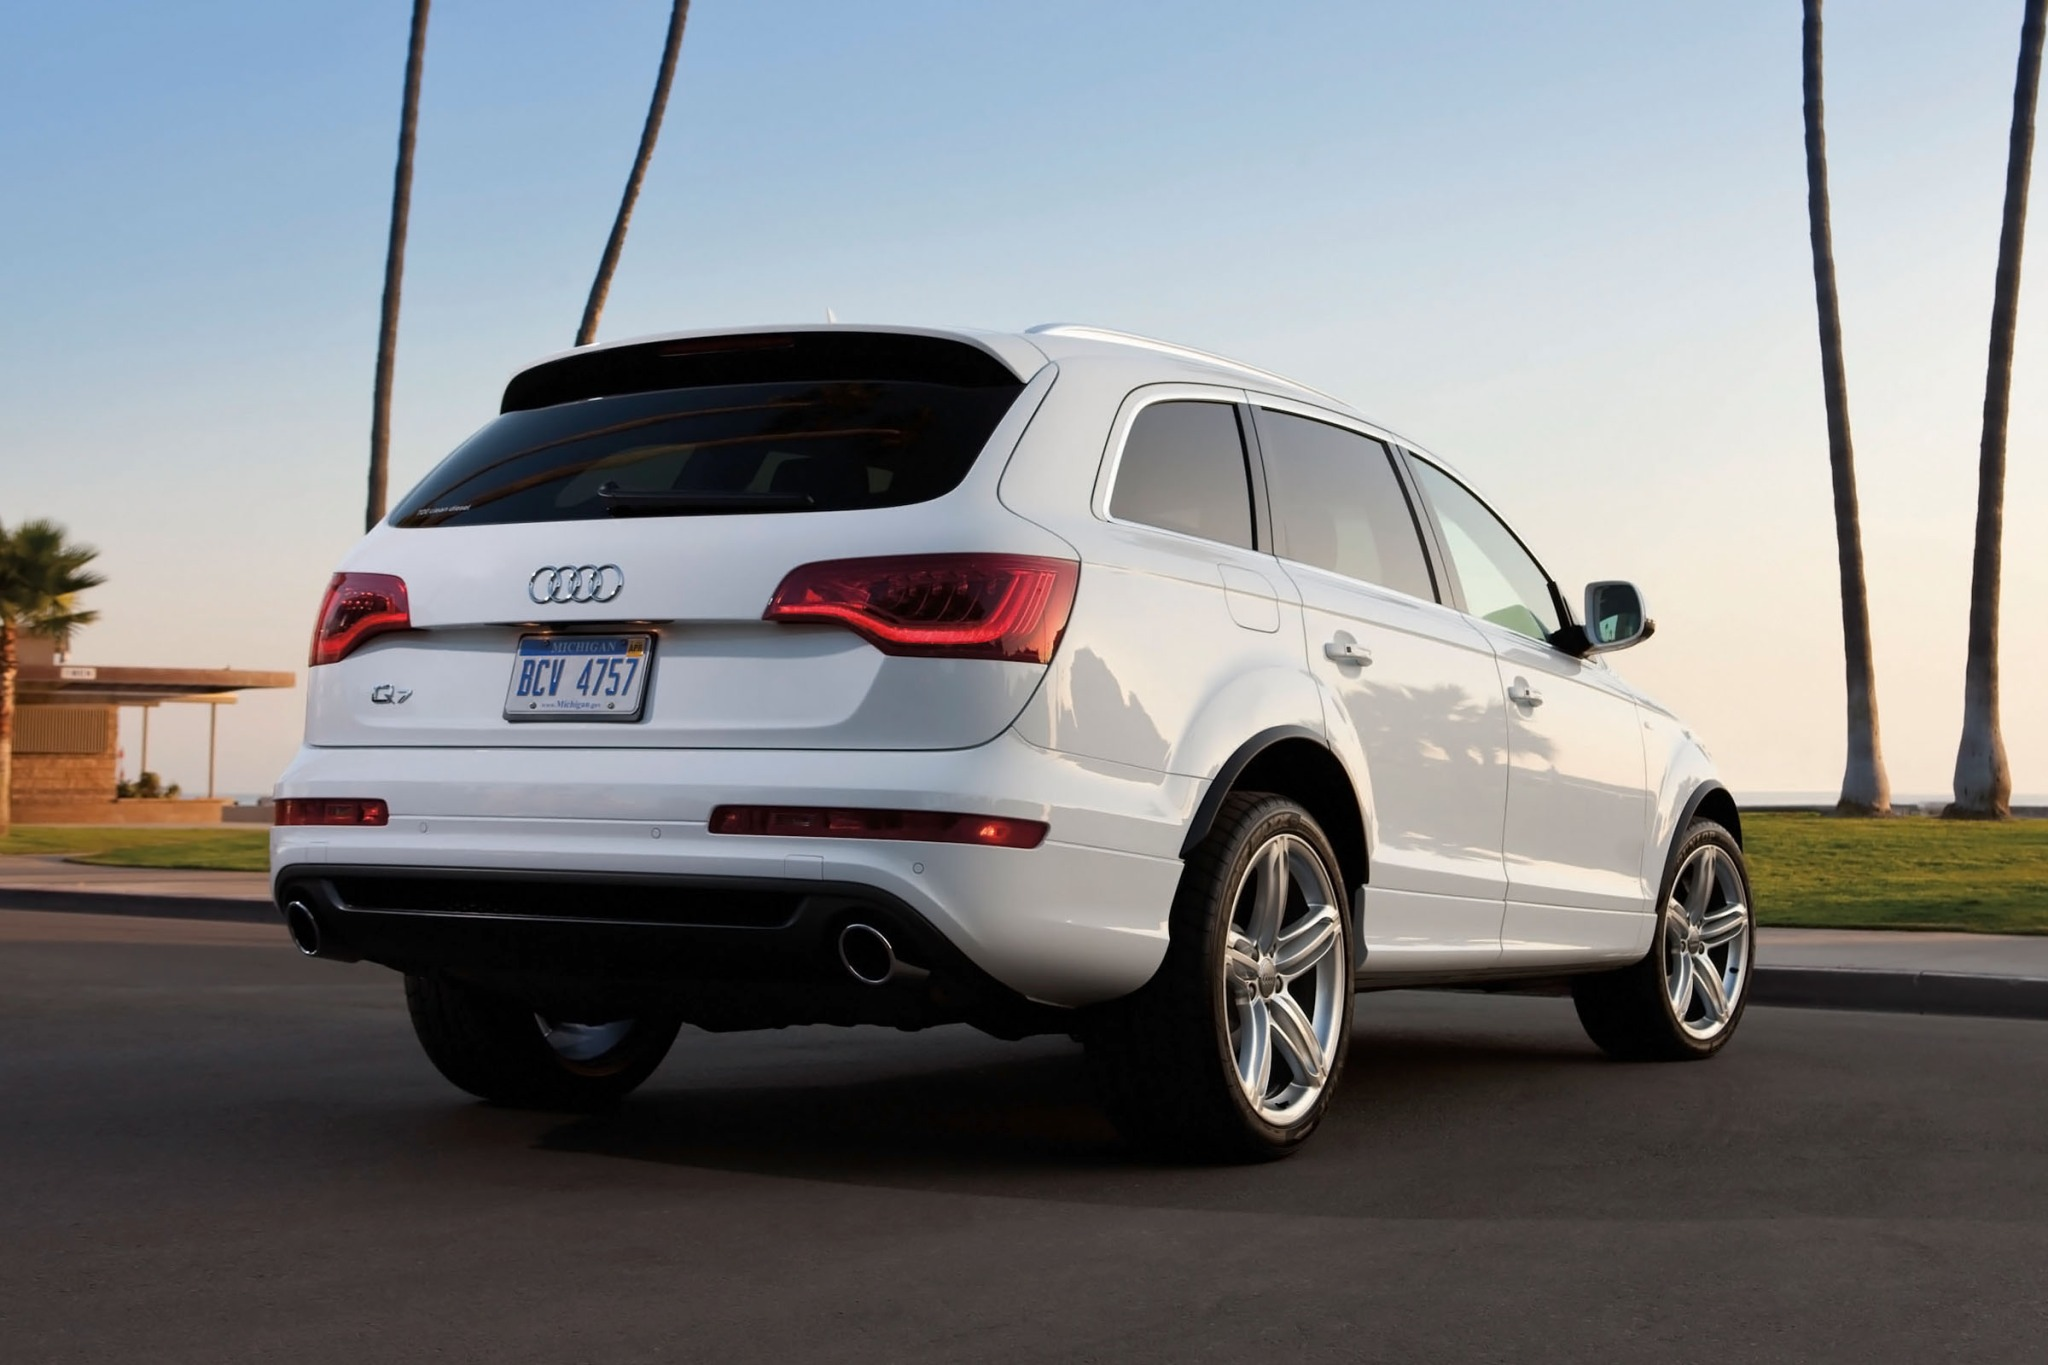 2013 audi q7 - information and photos - zombiedrive